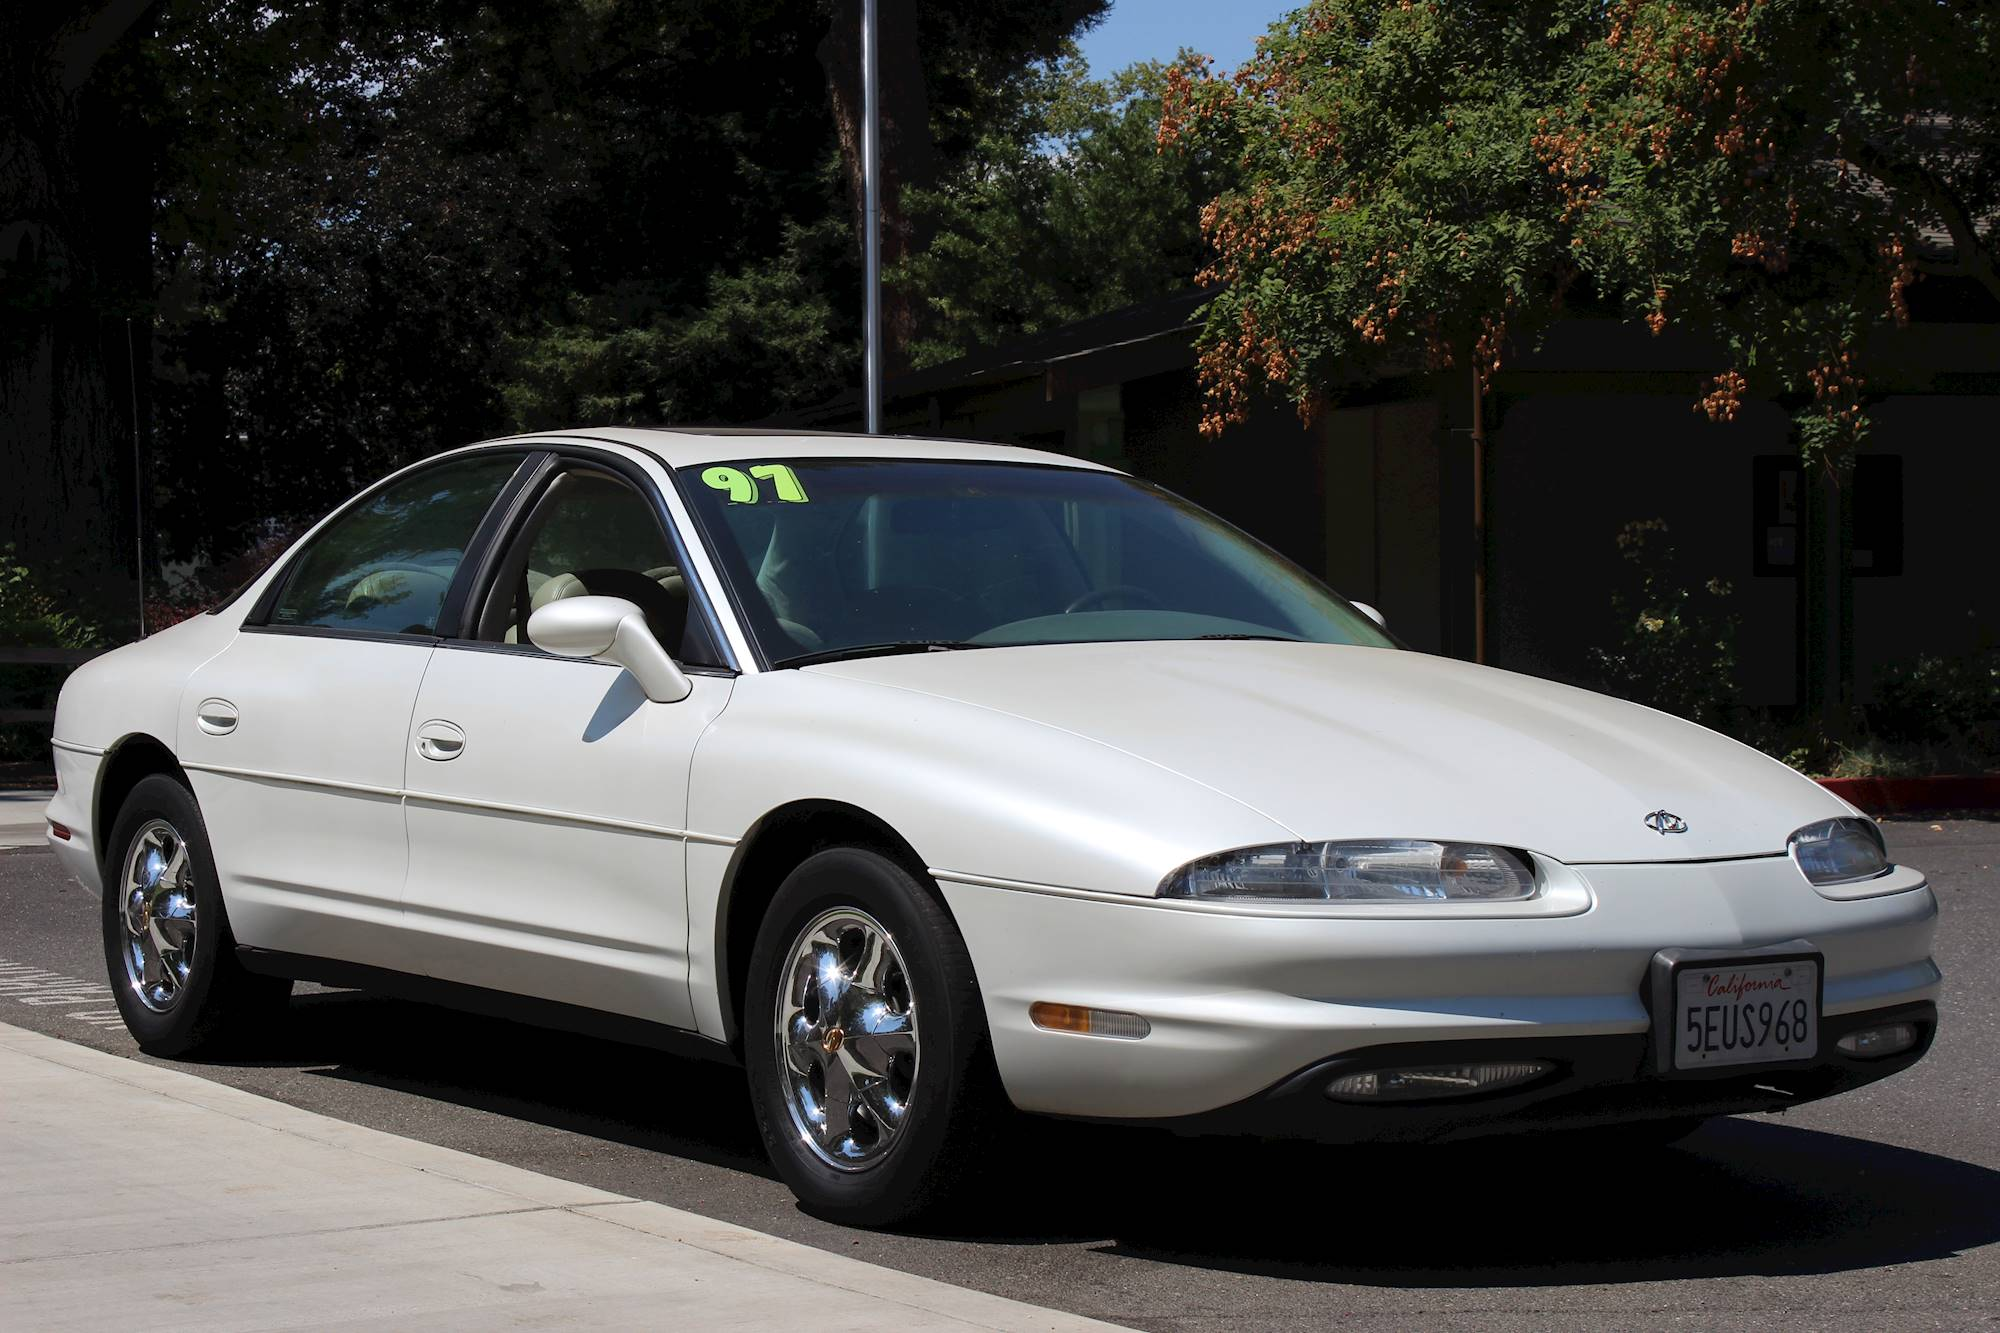 1997 oldsmobile aurora base sedan 4 0l v8 auto 1997 oldsmobile aurora base sedan 4